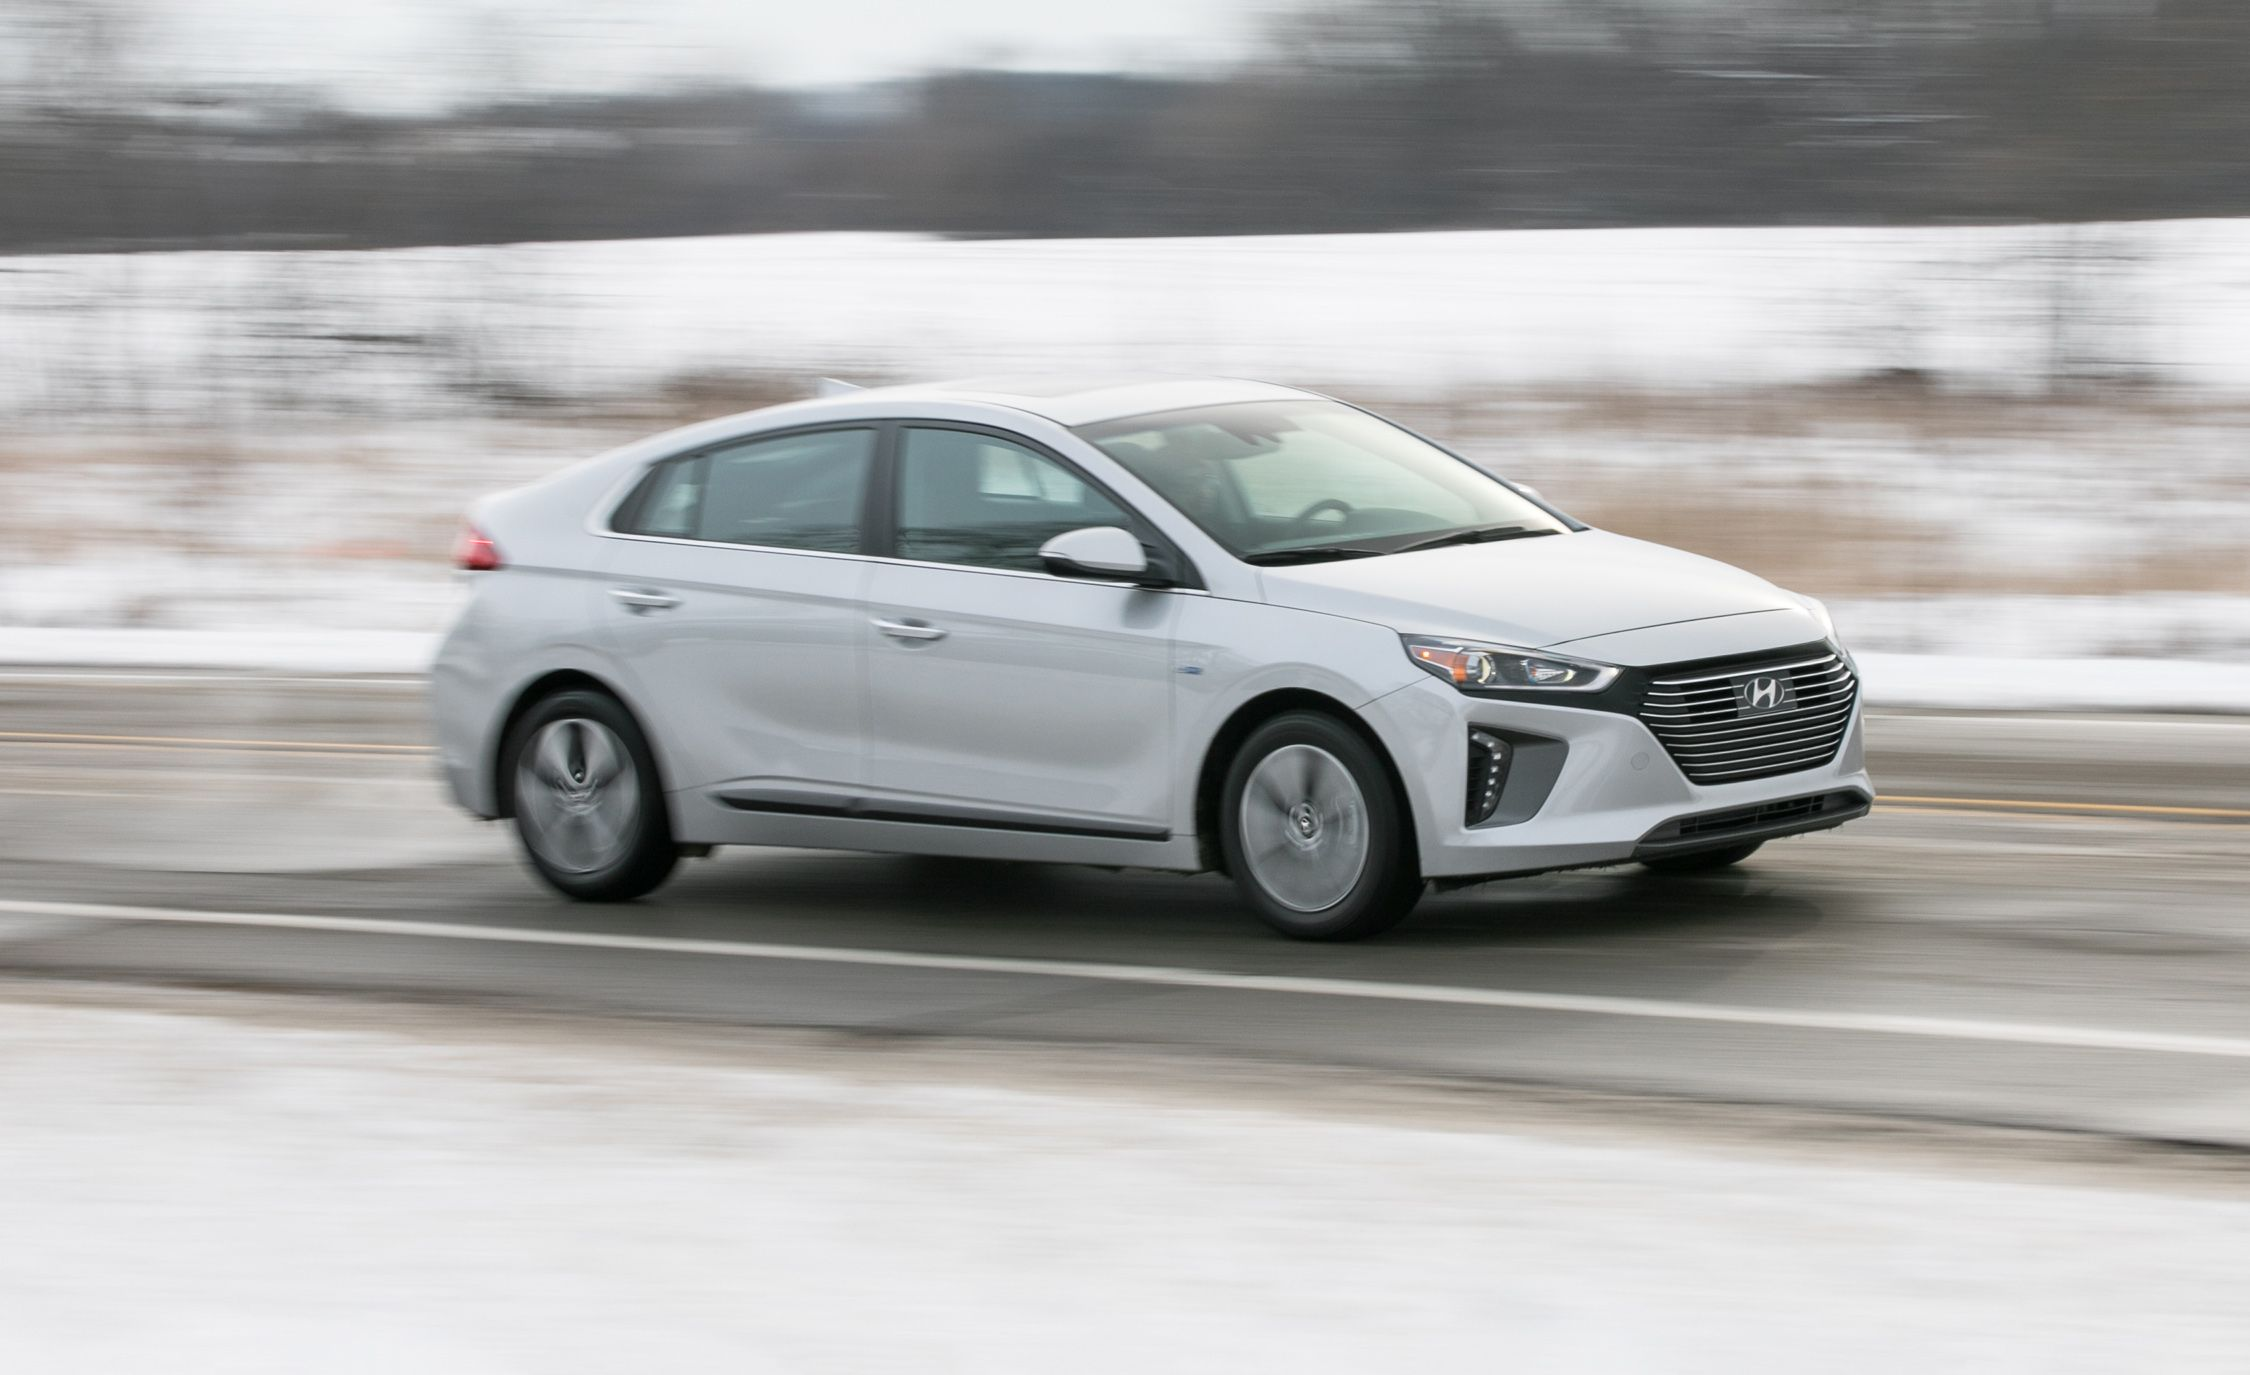 Hyundai Ioniq Reviews | Hyundai Ioniq Price, Photos, and Specs